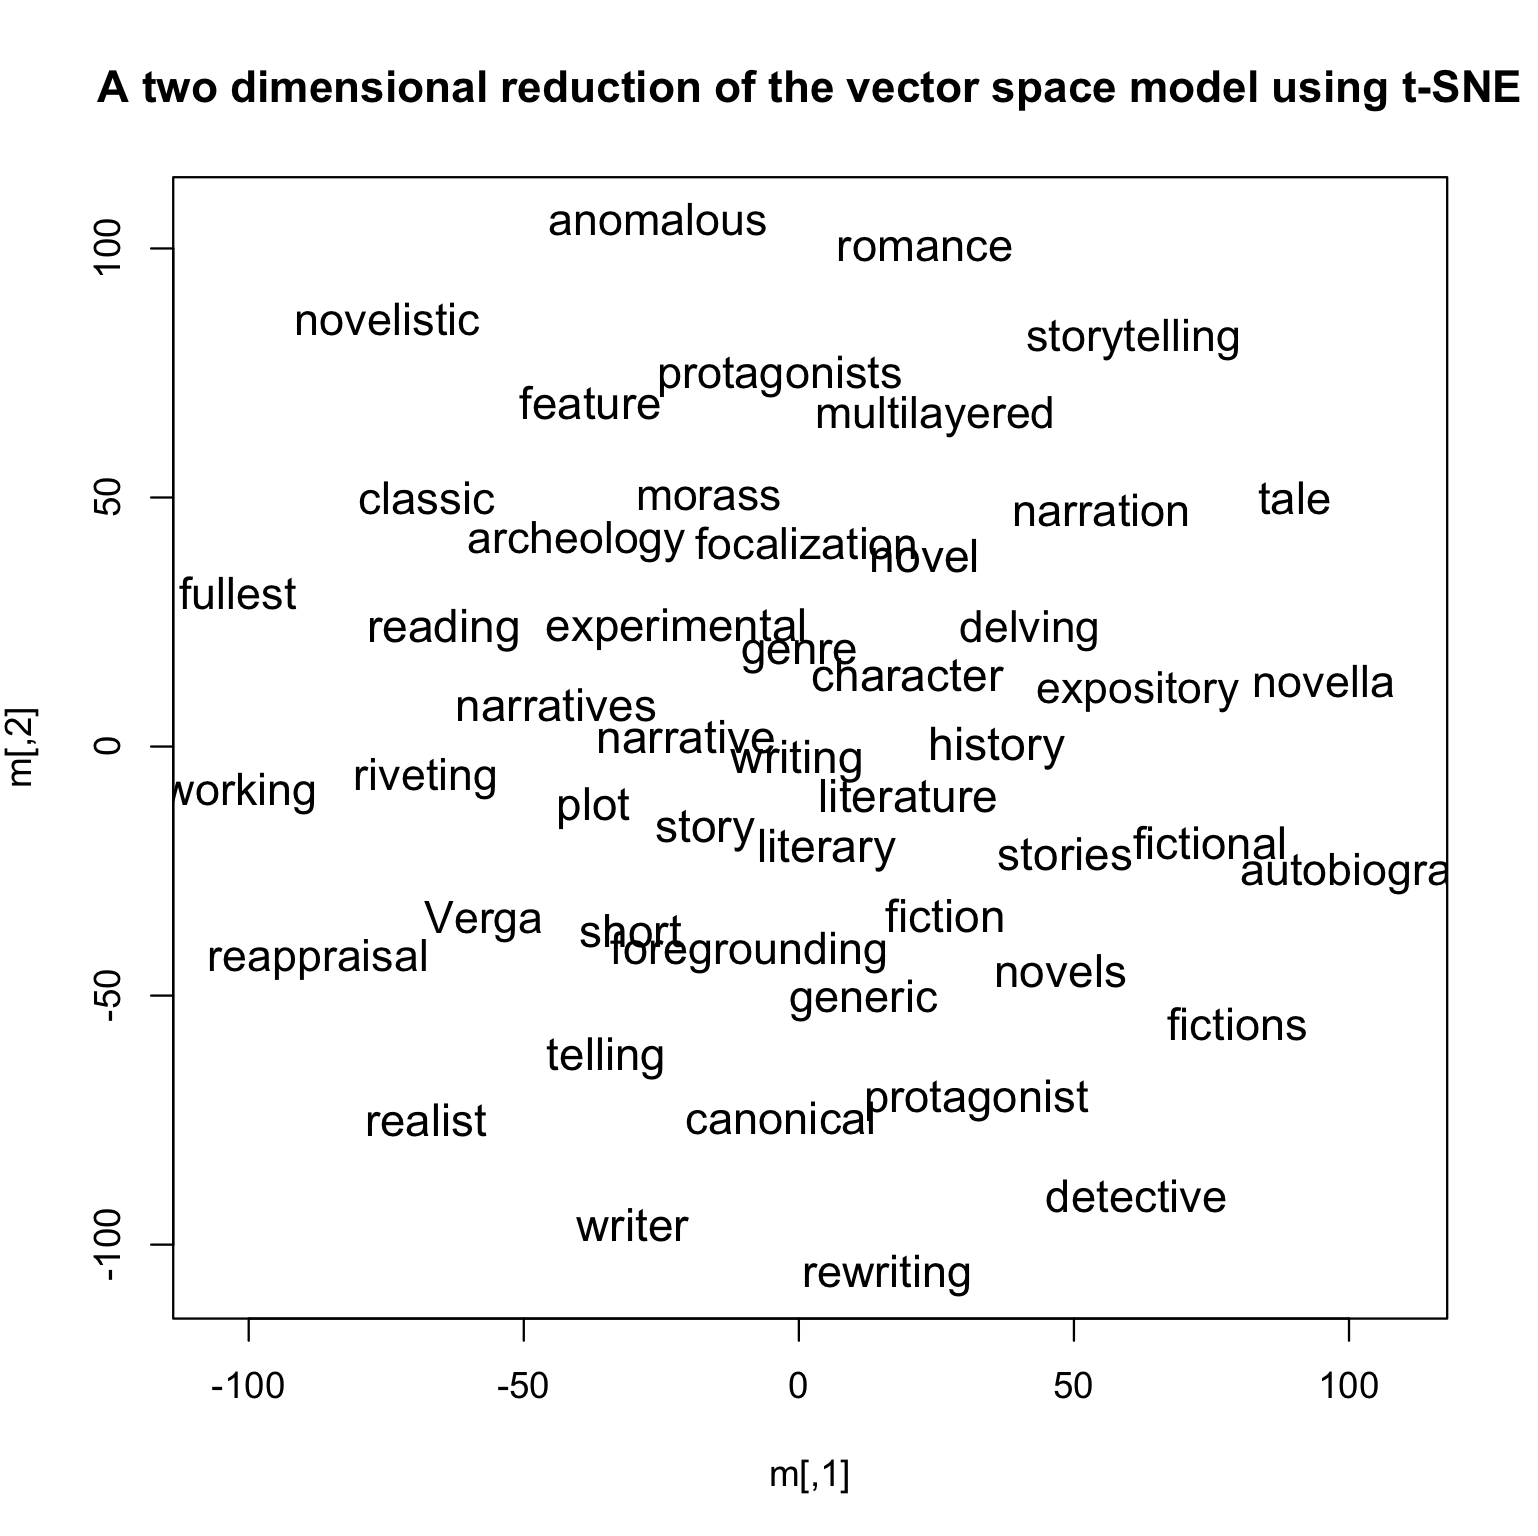 A Two Dimensional Reduction of the Vector Space Model Using t-SNE